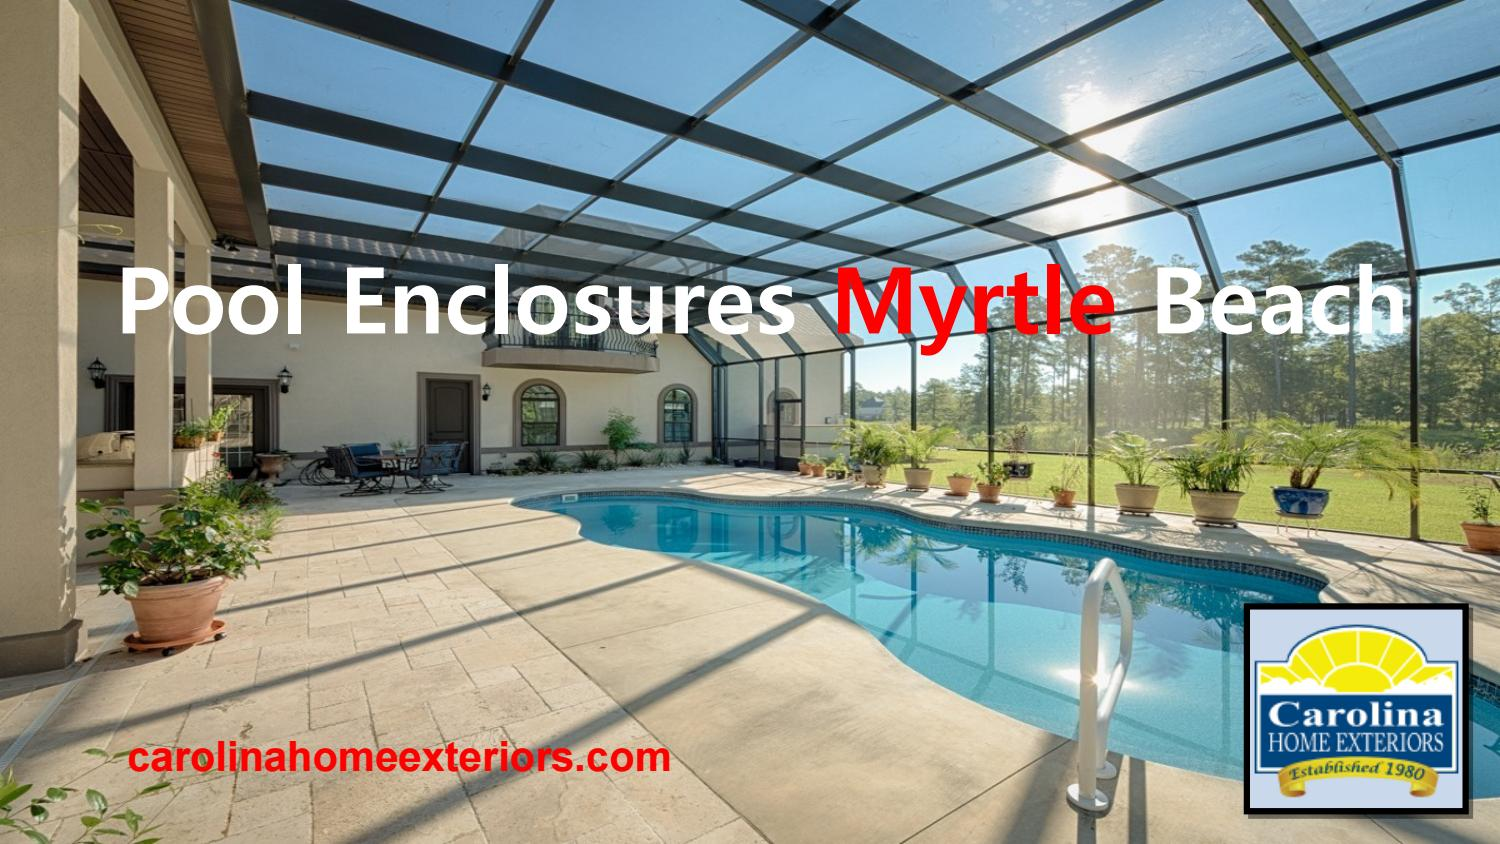 Pool Enclosures Myrtle Beach Carolina Home Exteriors By Carolinahomeexteriors Issuu